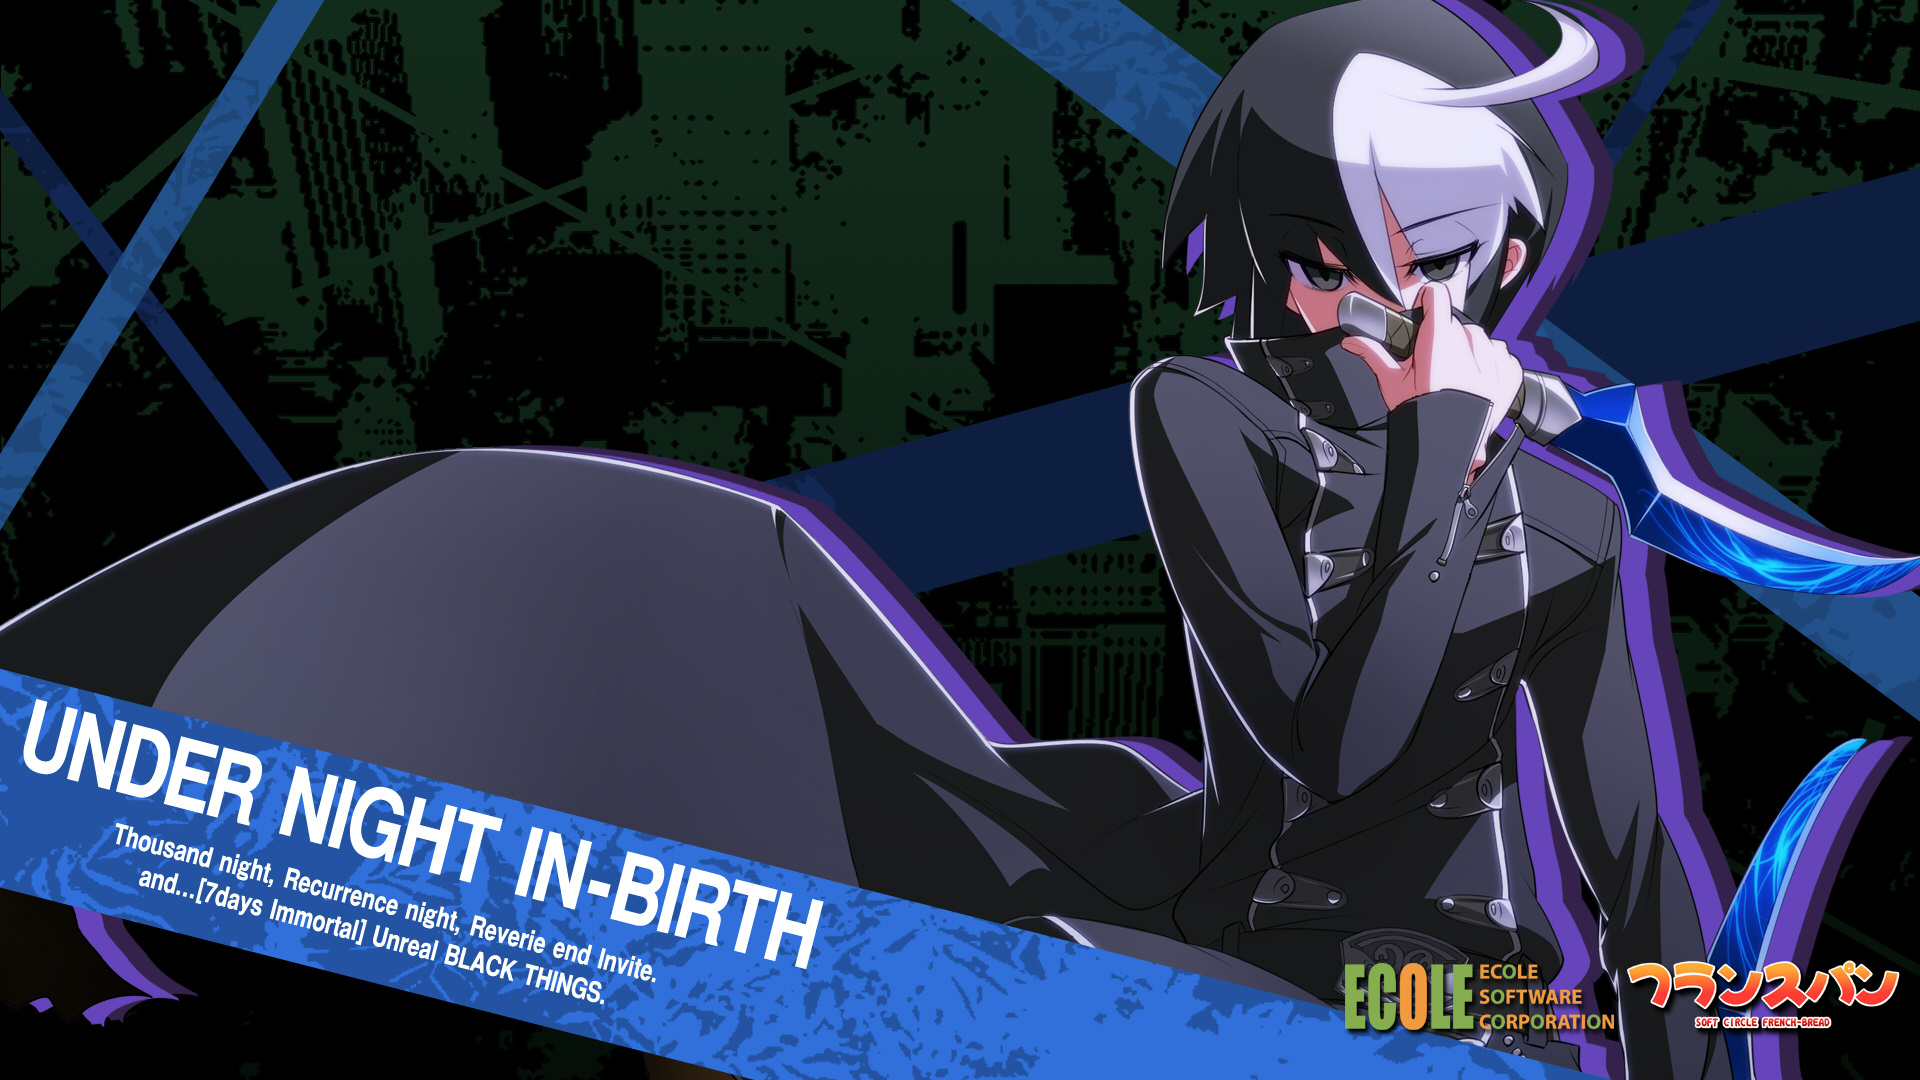 seth (under night in-birth) hd wallpaper #1241836 - zerochan anime